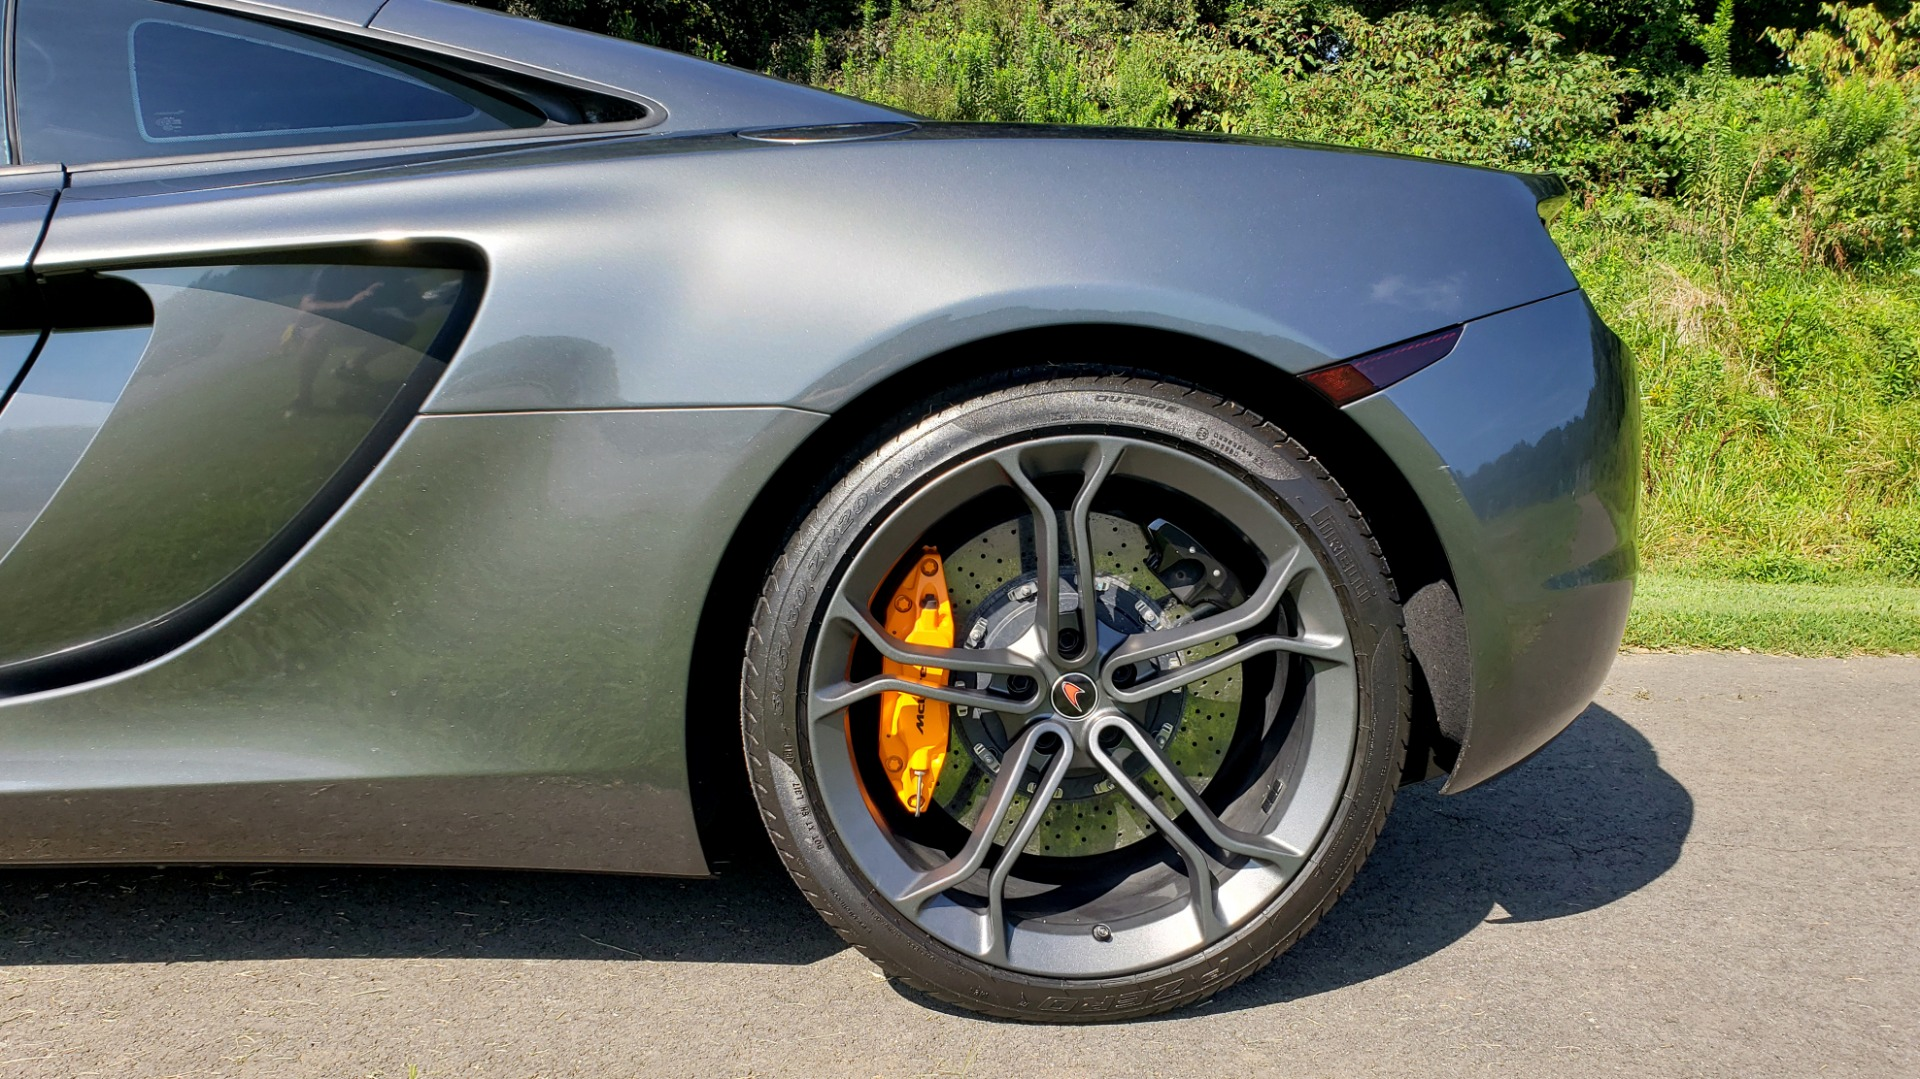 Used 2012 McLaren MP4-12C COUPE / 3.8 L V8 592HP / AUTO / NAV / CCB / LOW MILES for sale $97,999 at Formula Imports in Charlotte NC 28227 93